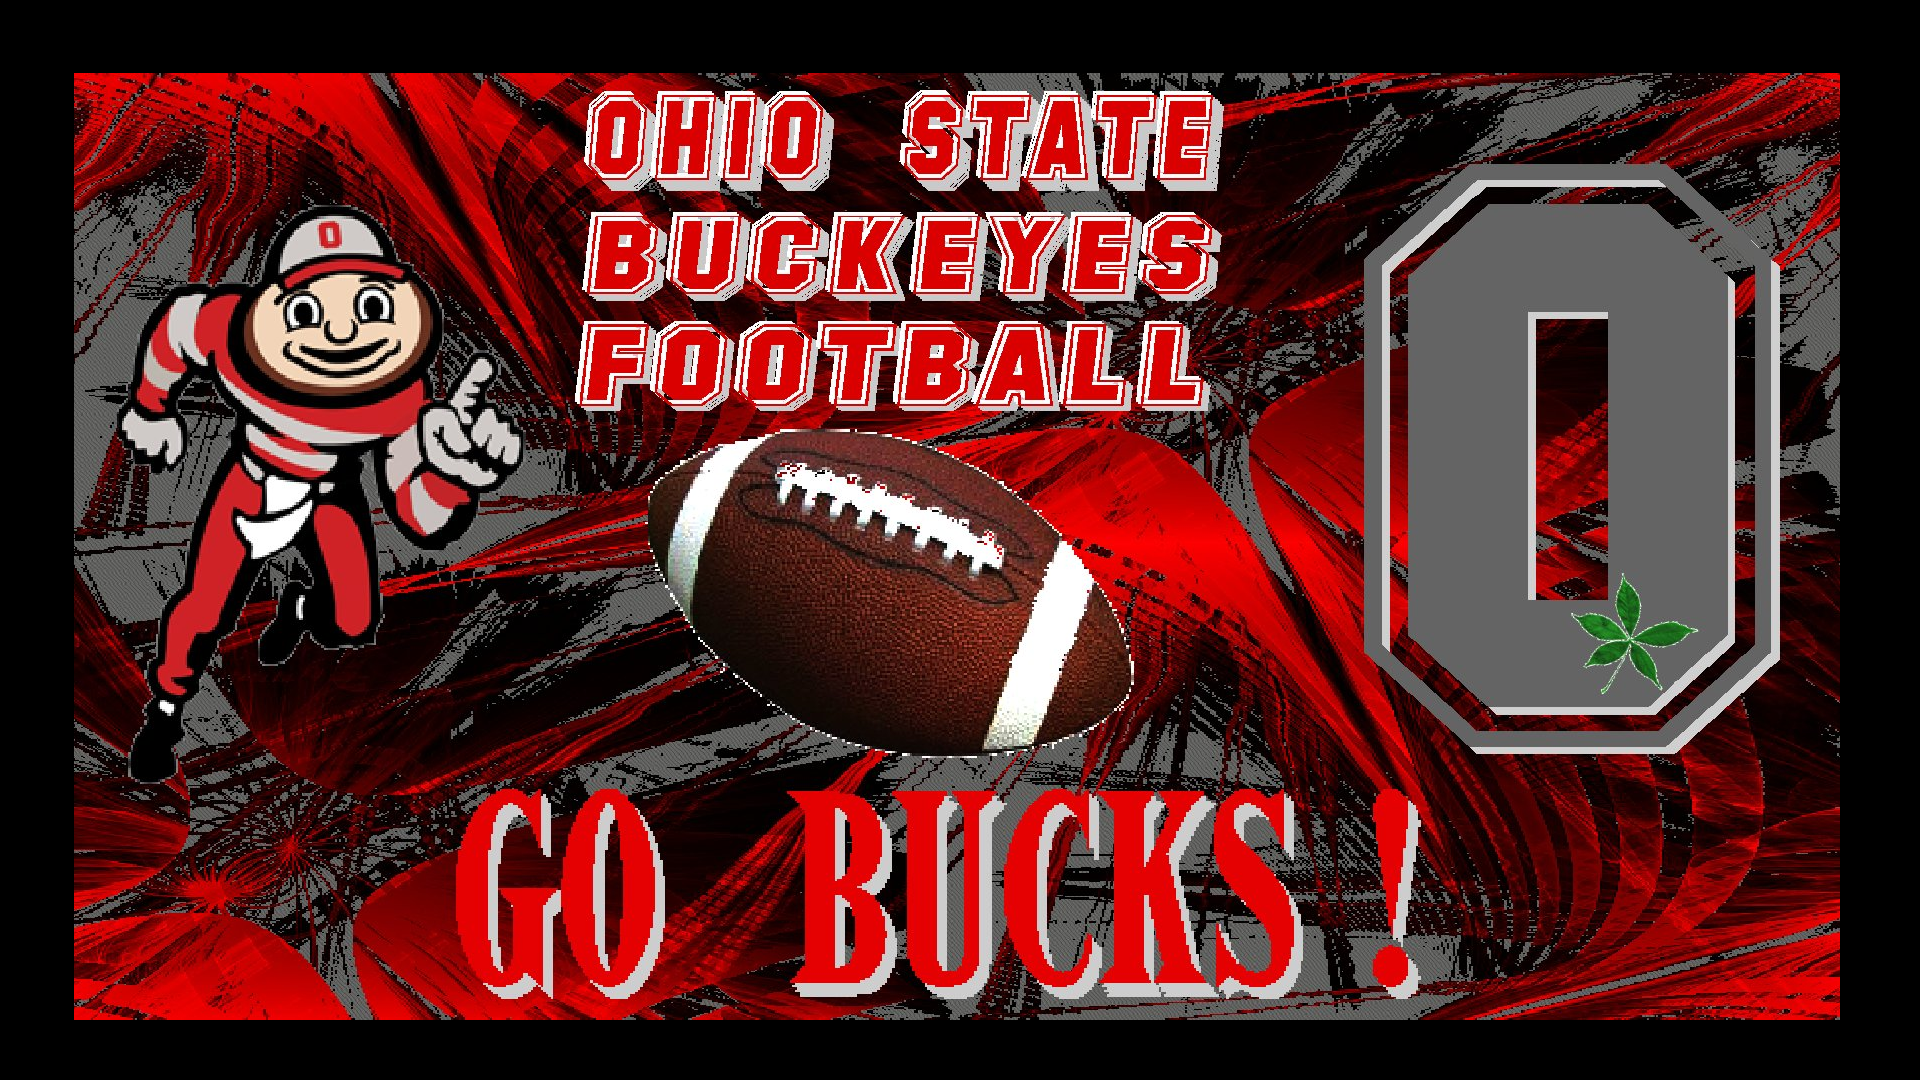 Ohio State Football OHIO STATE BUCKEYES FOOTBALL GO BUCKS 1920x1080